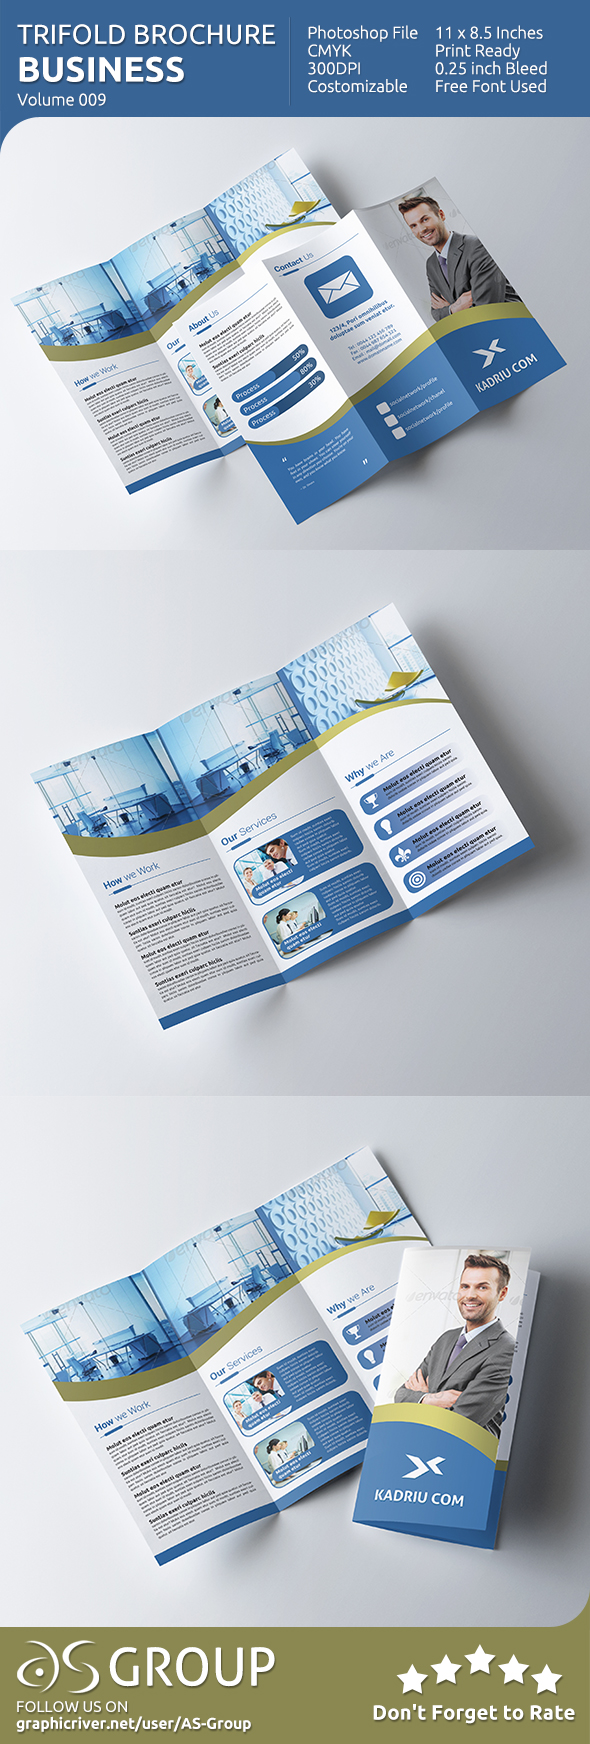 business_tri-fold-brochure-v009-preview